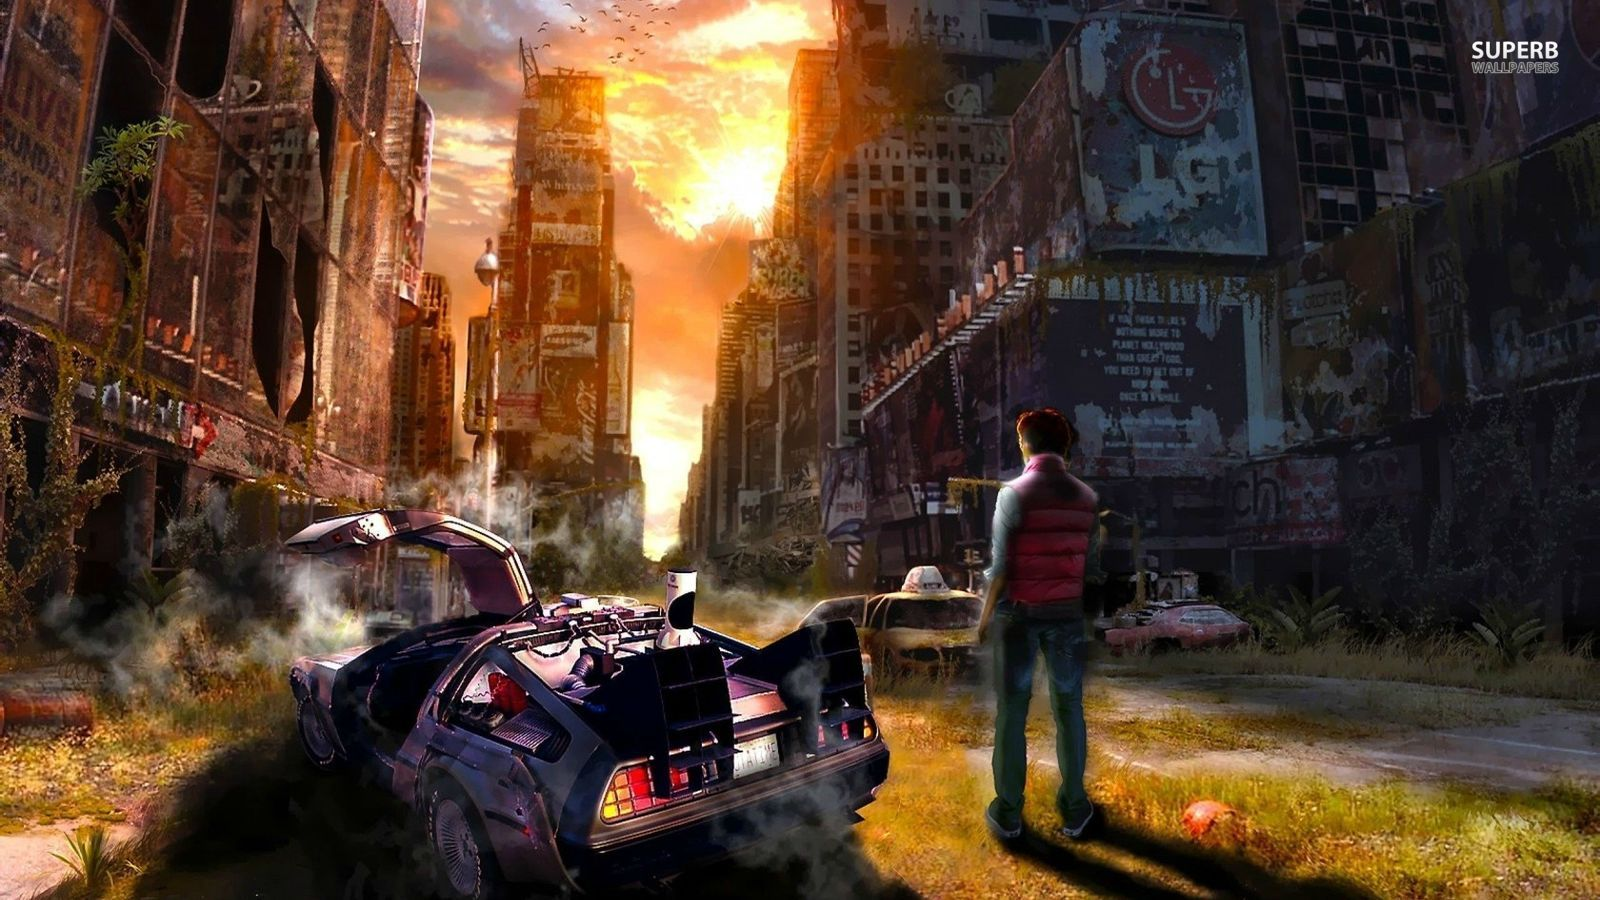 Time Travel Images Back To The Future Hd Wallpaper And